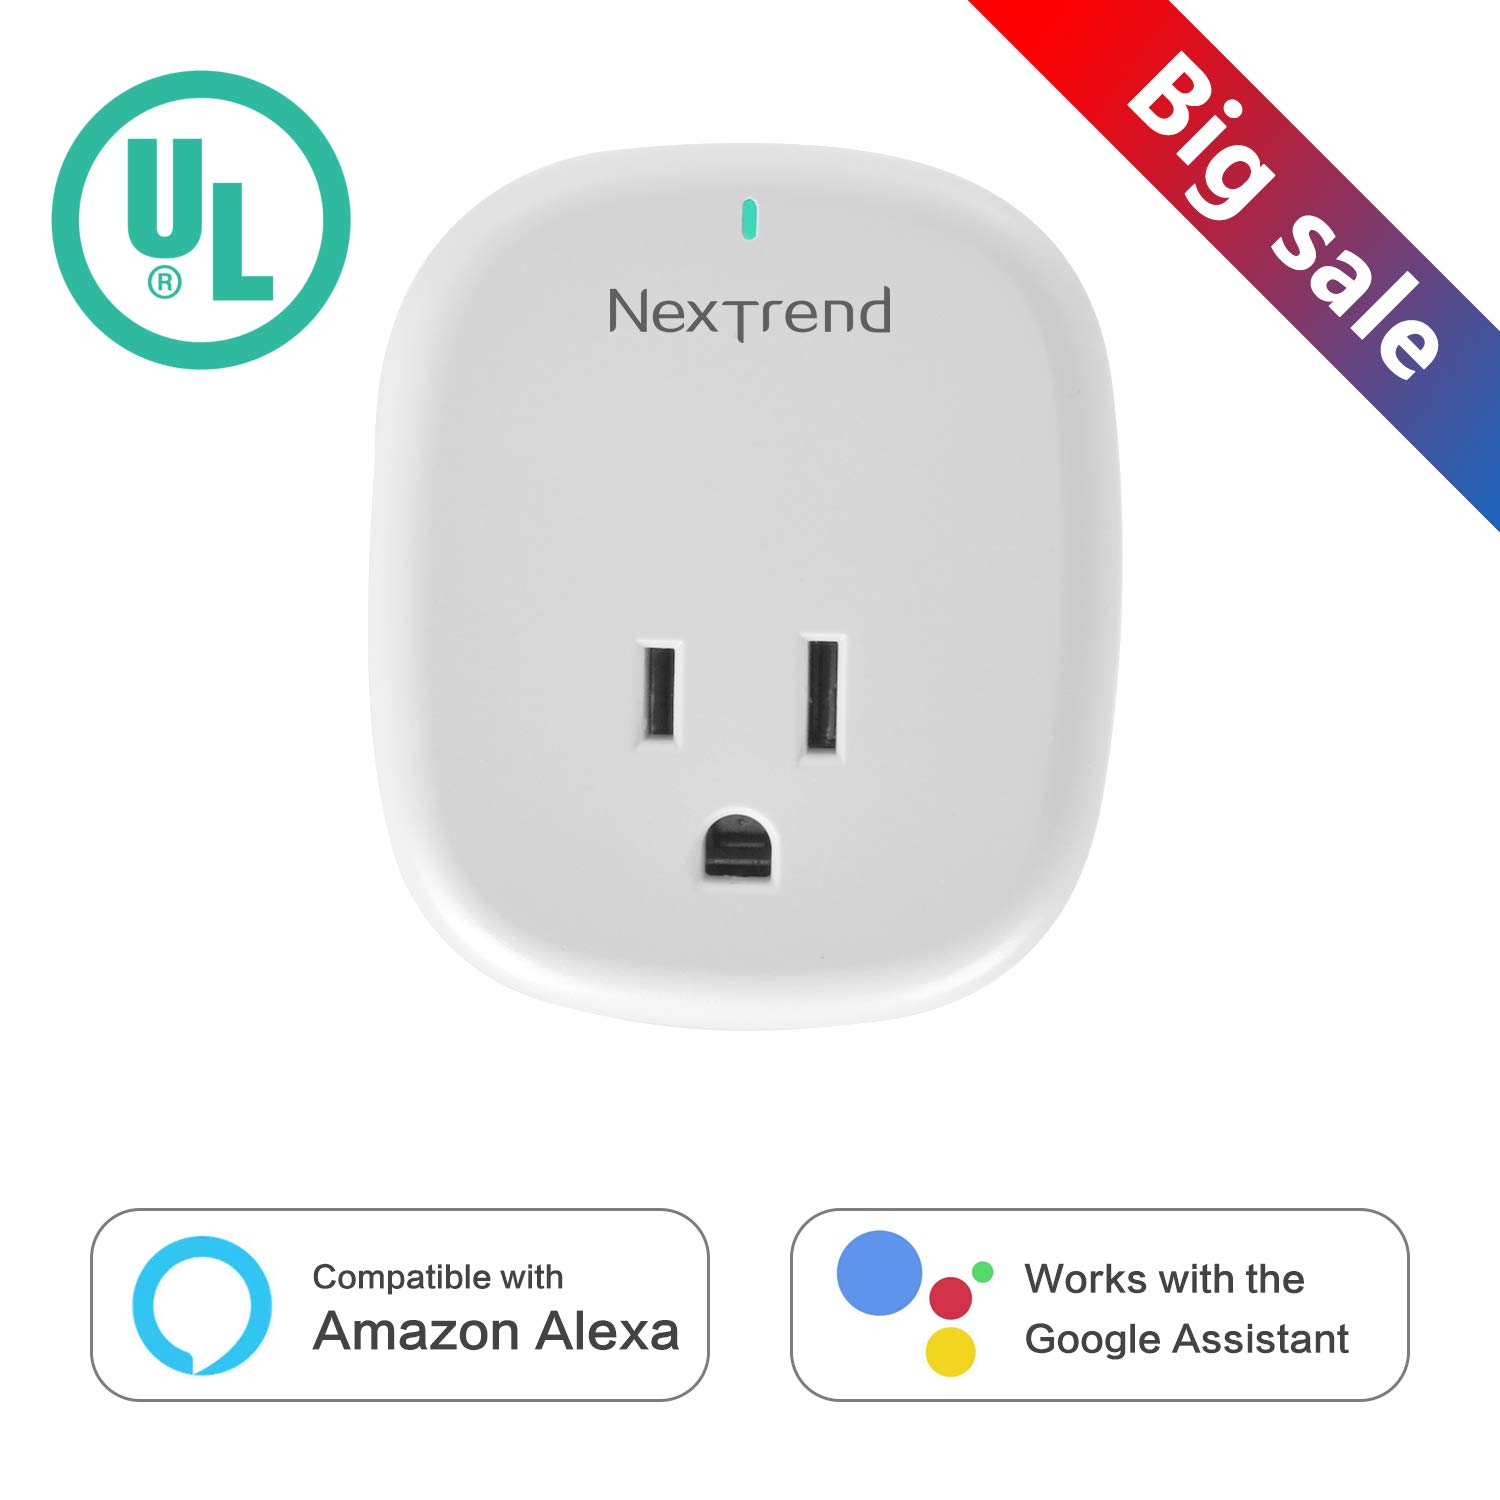 Mini Smart WiFi Plug, NexTrend Mini WiFi Smart Socket Electrical Power Switch No Hub Required with 5V/1A USB Charging Port Compatible with Alexa Support 2.4GHz Wifi Networks for Household Applicances